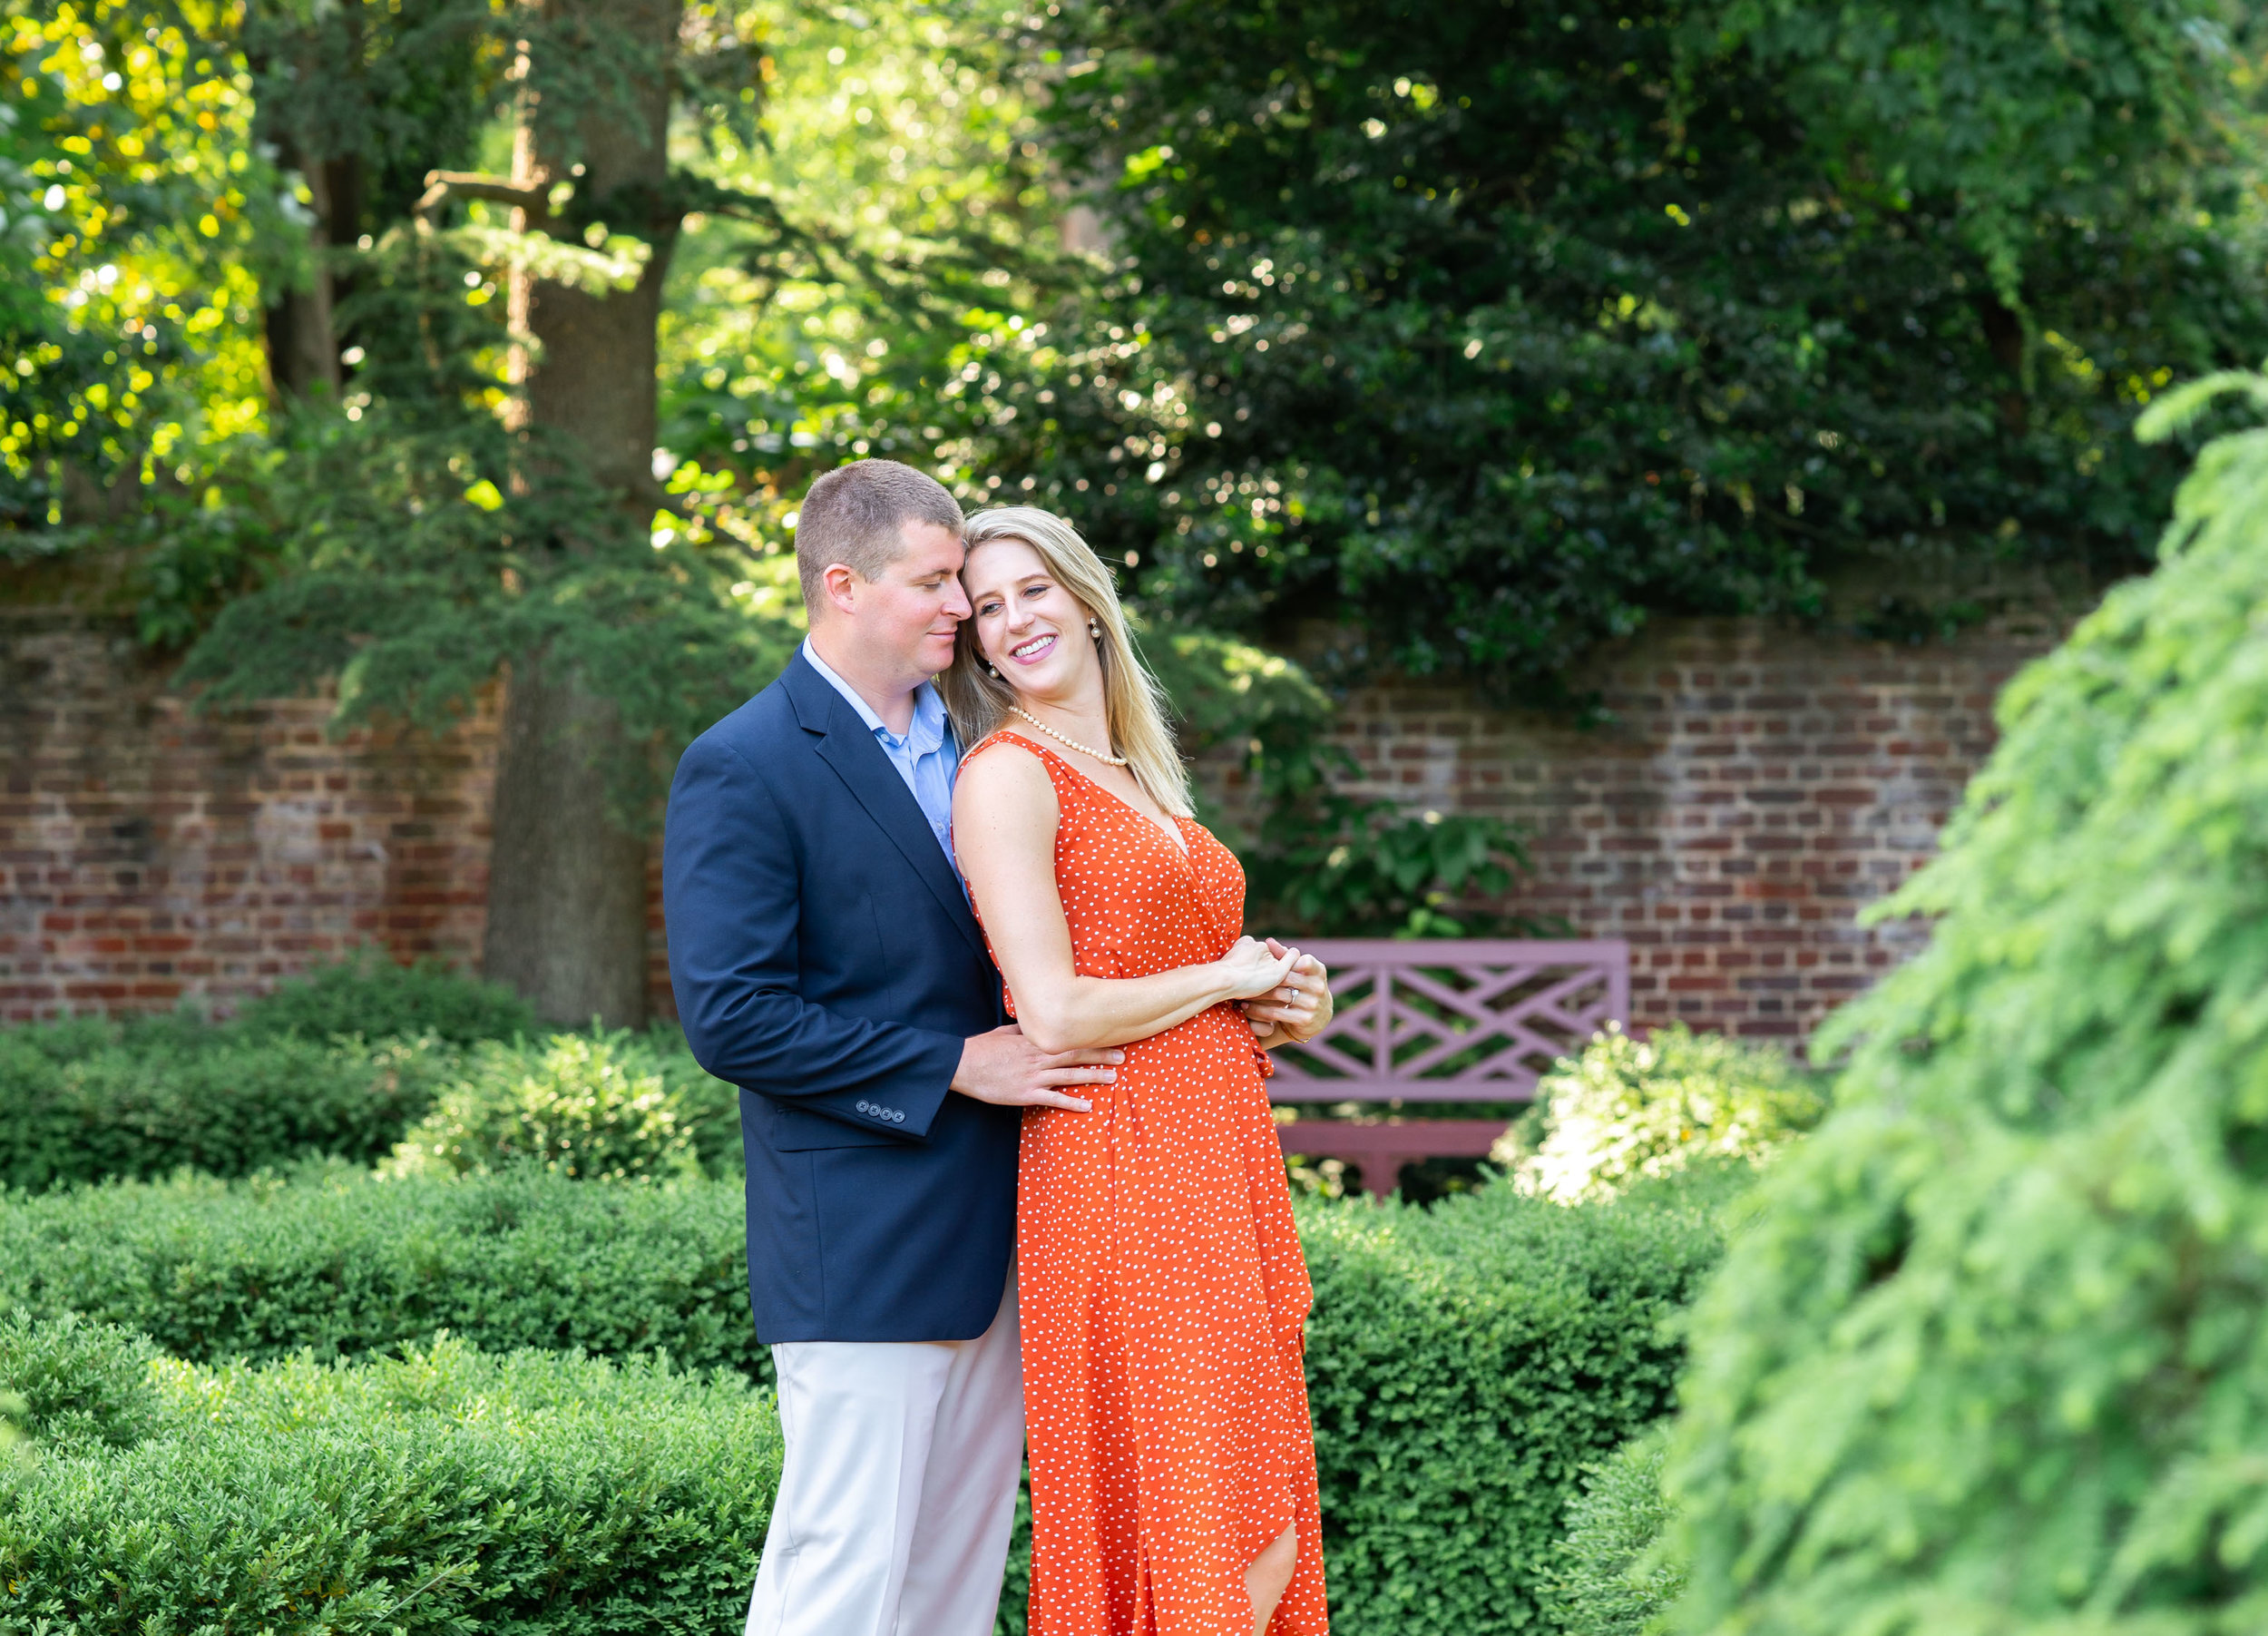 Engaged couple posing in gardens at William Paca House